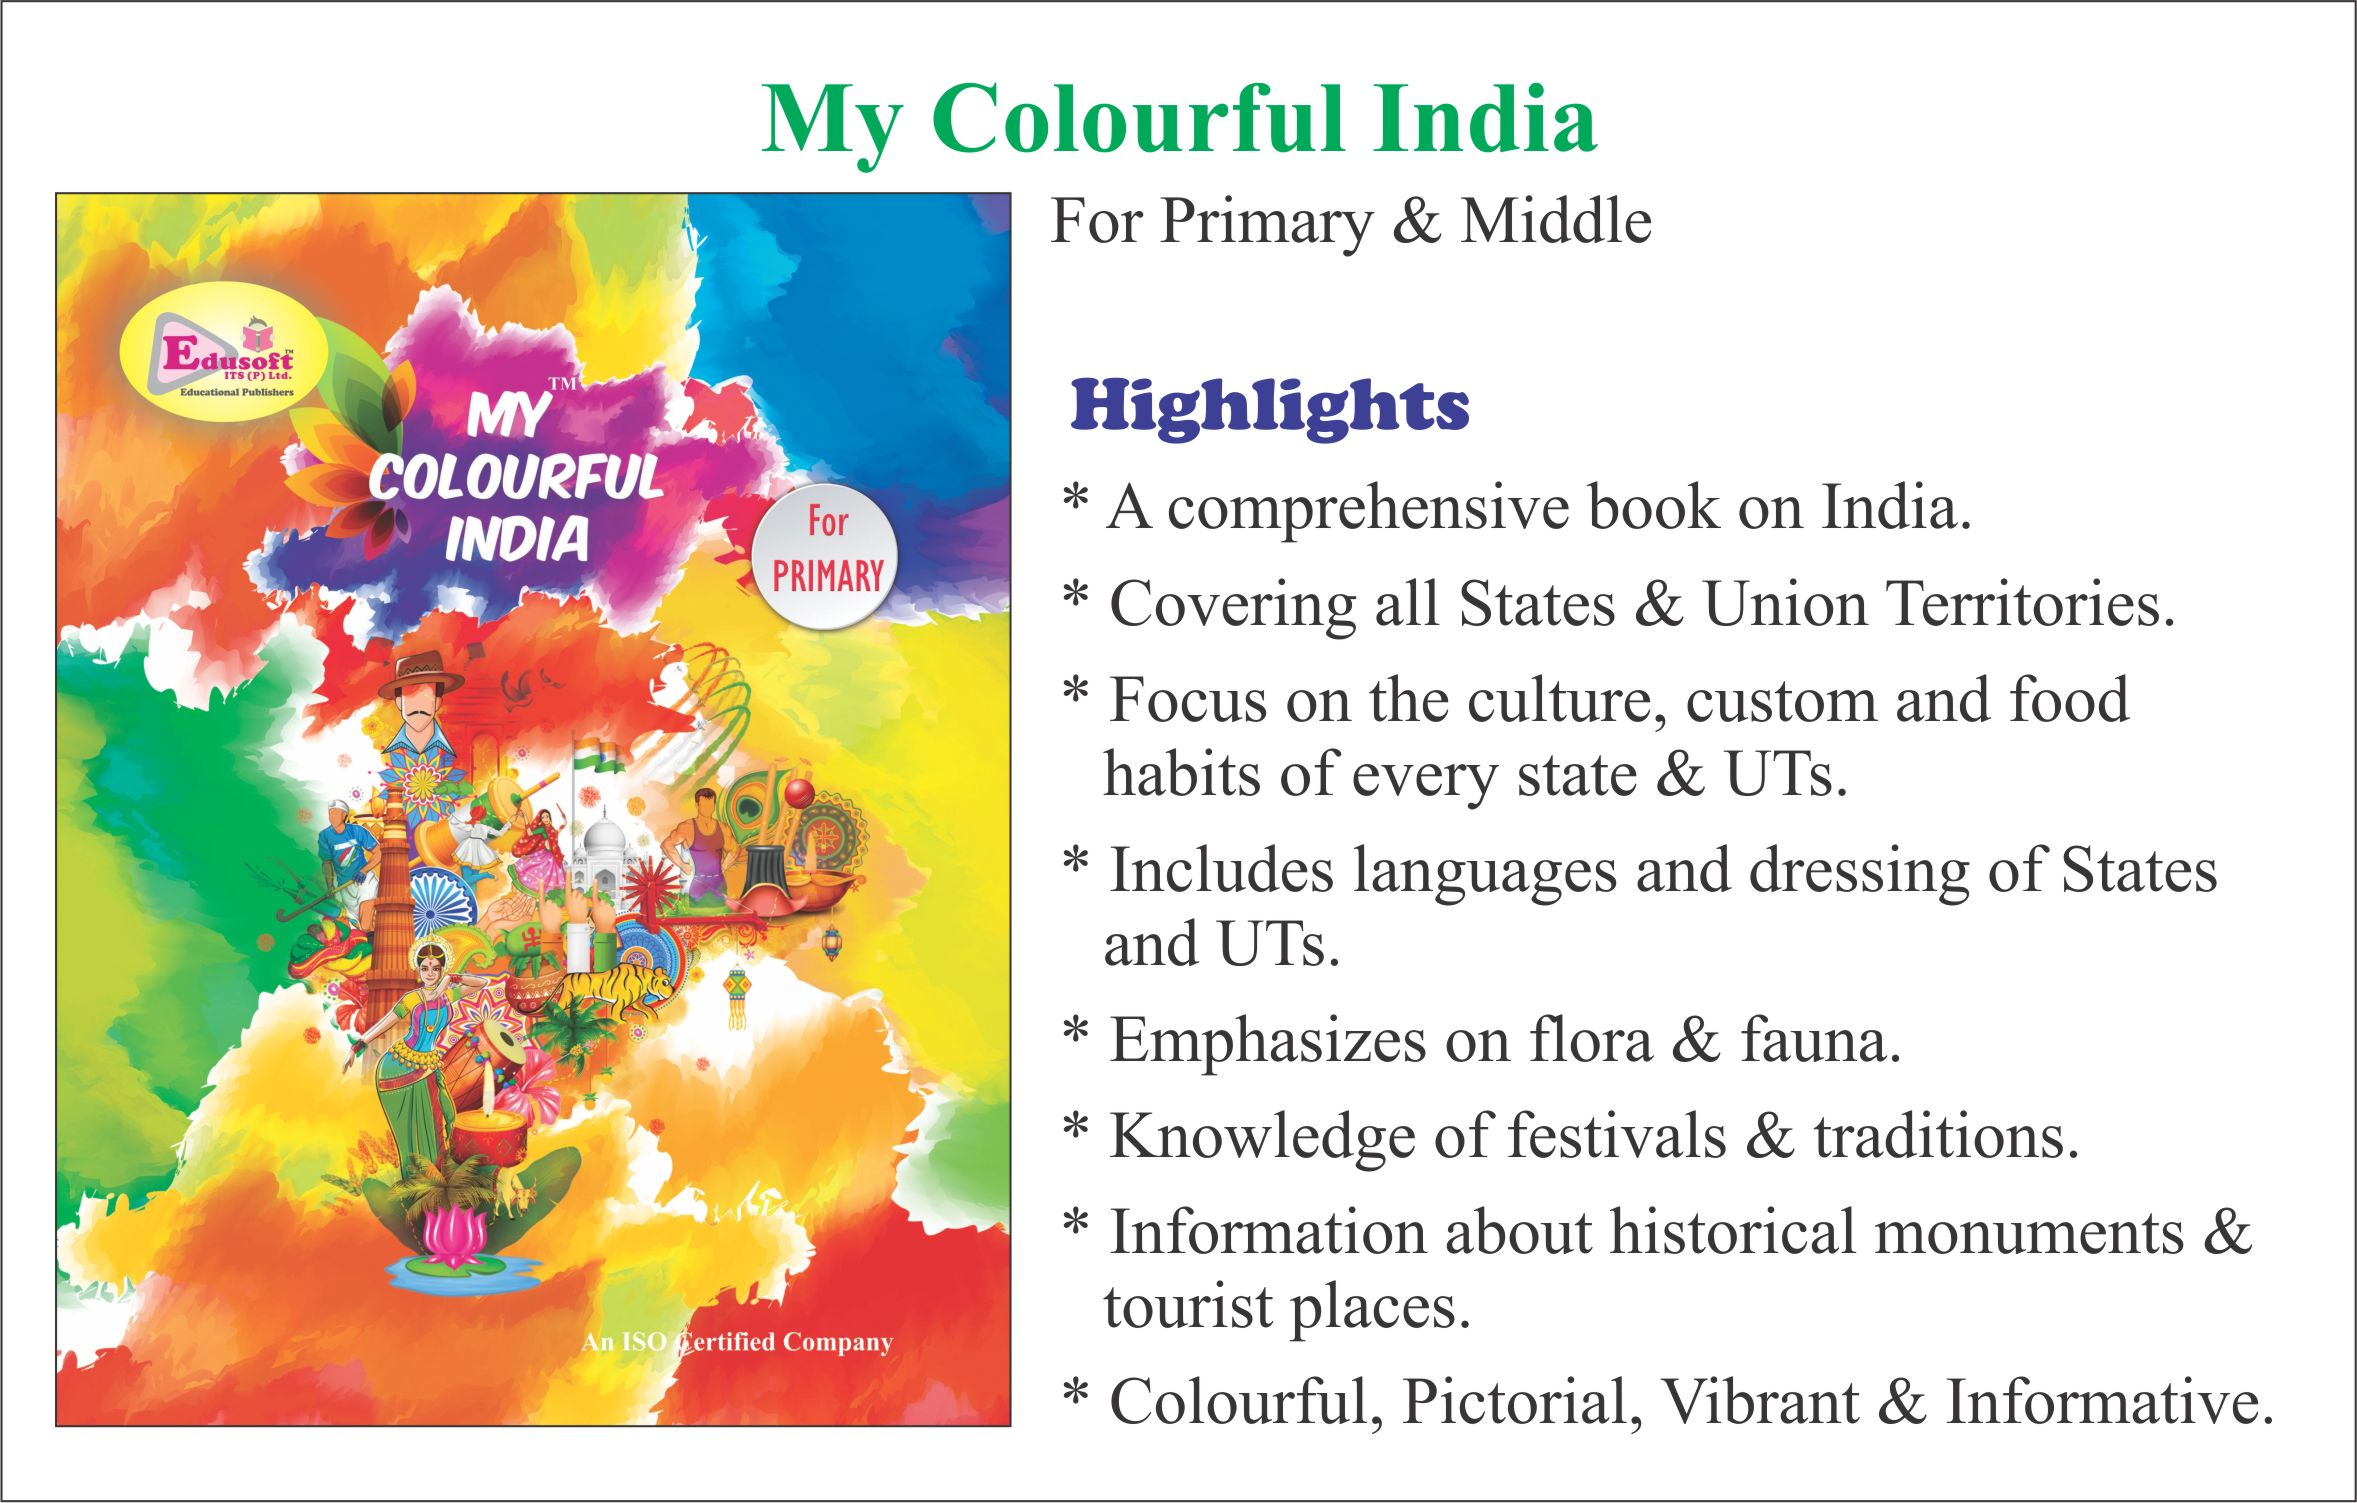 My Colourful India